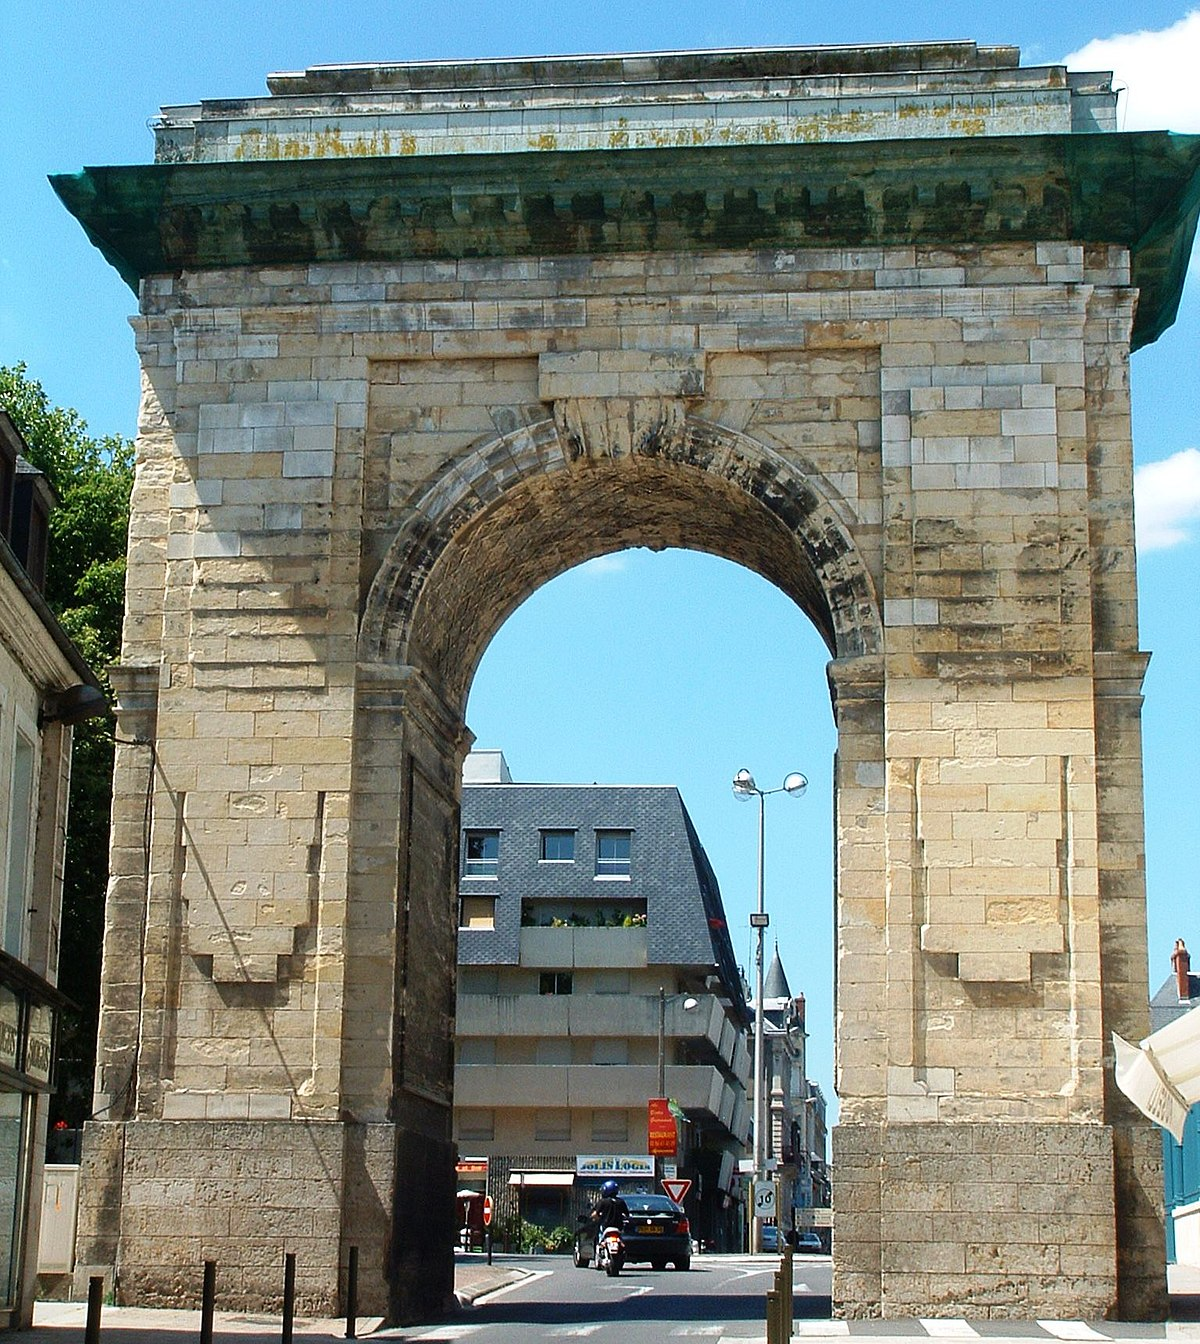 Porte de paris nevers wikip dia for Porte wikipedia